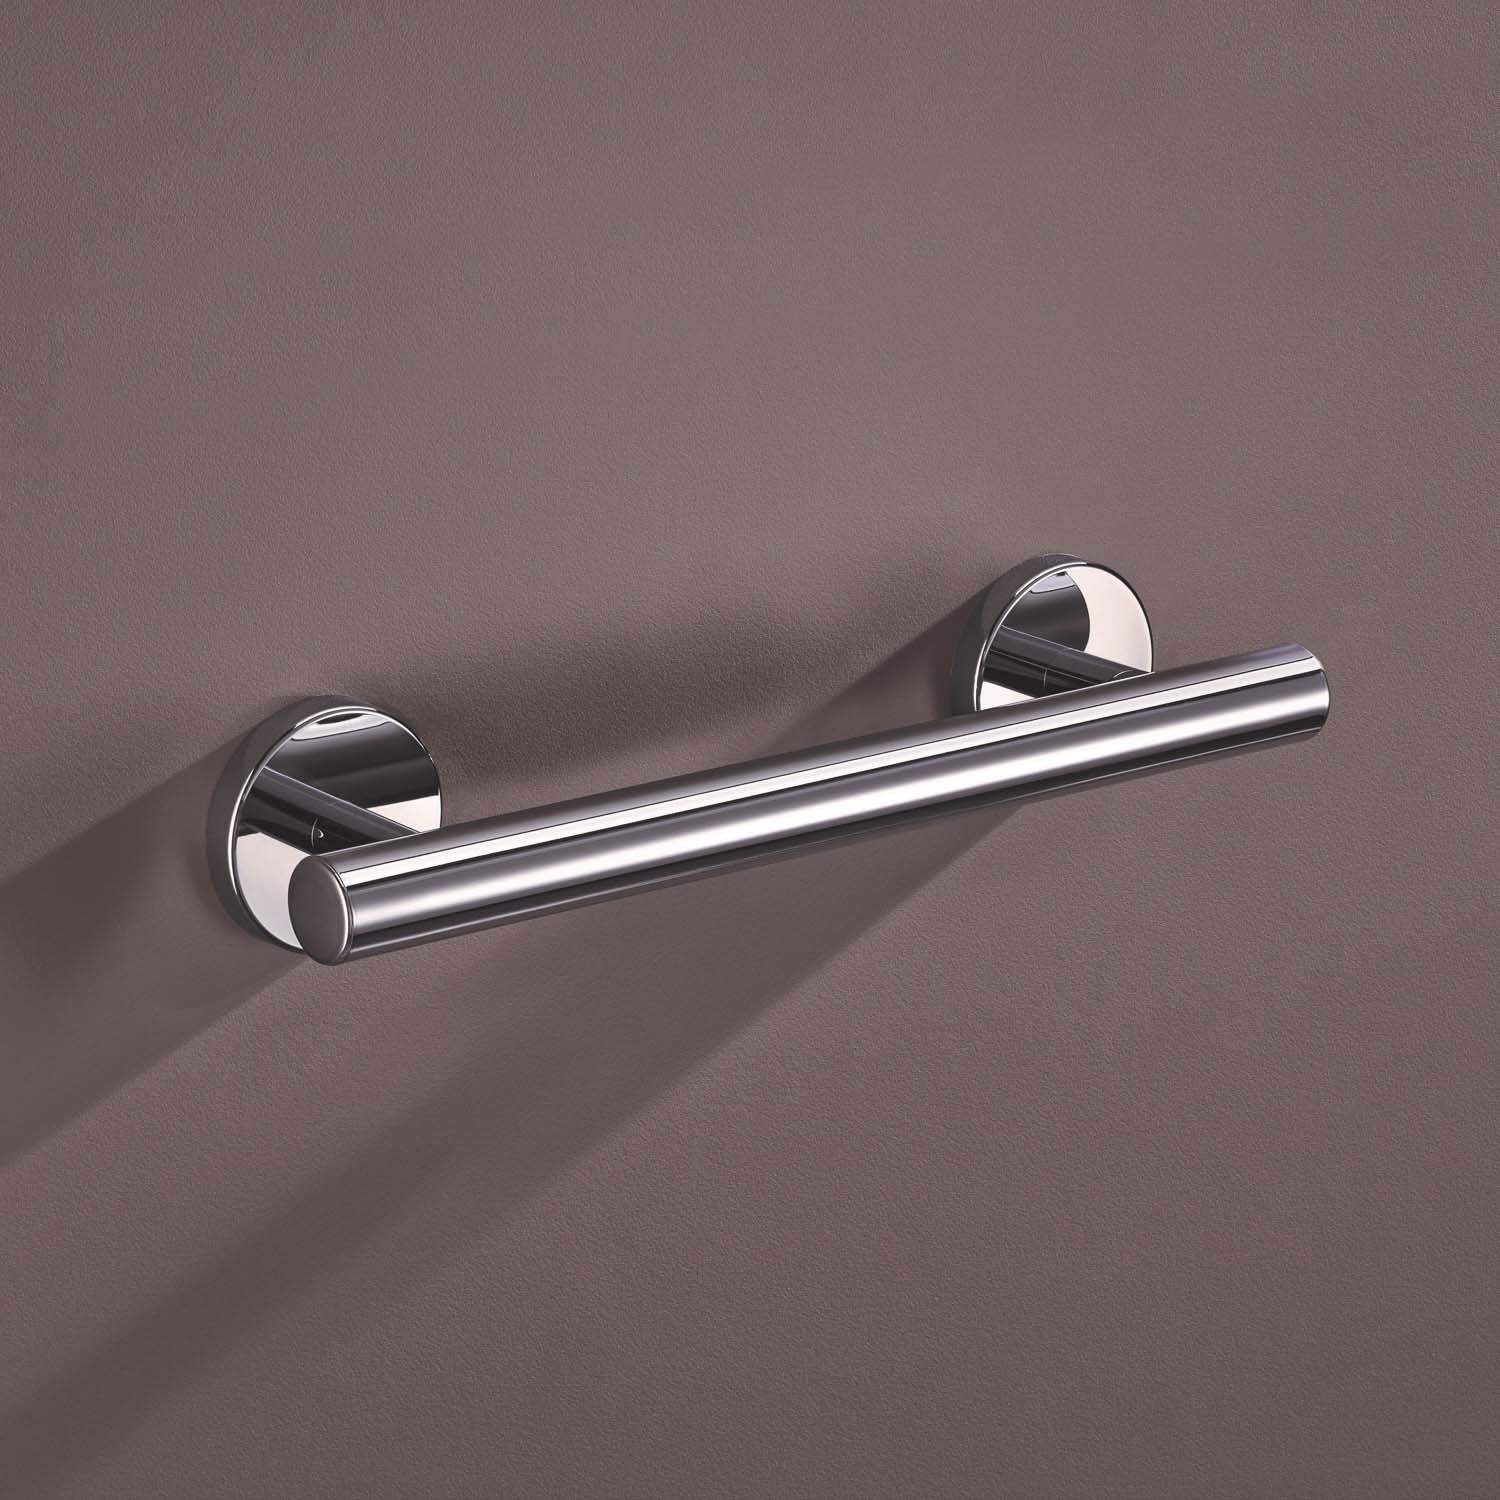 600mm Warm Touch Circula Straight Grab Rail with a chrome look finish lifestyle image